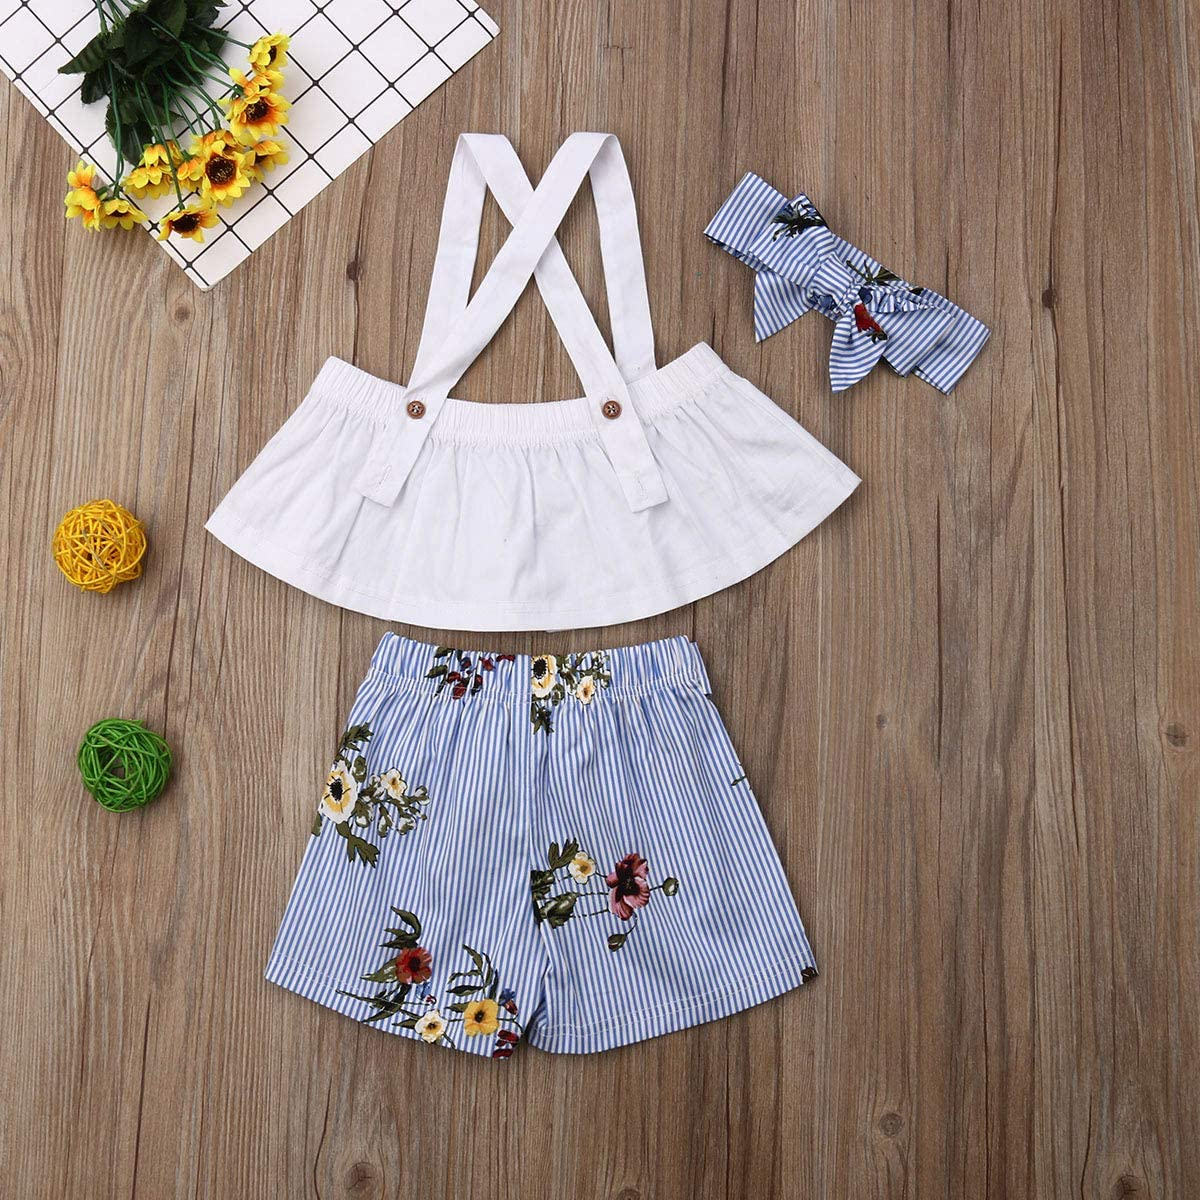 3Pcs Toddler Kids Baby Girl Striped Outfits Halter Ruffle Crop Top Bow Floral Shorts Headband Summer Clothes Set